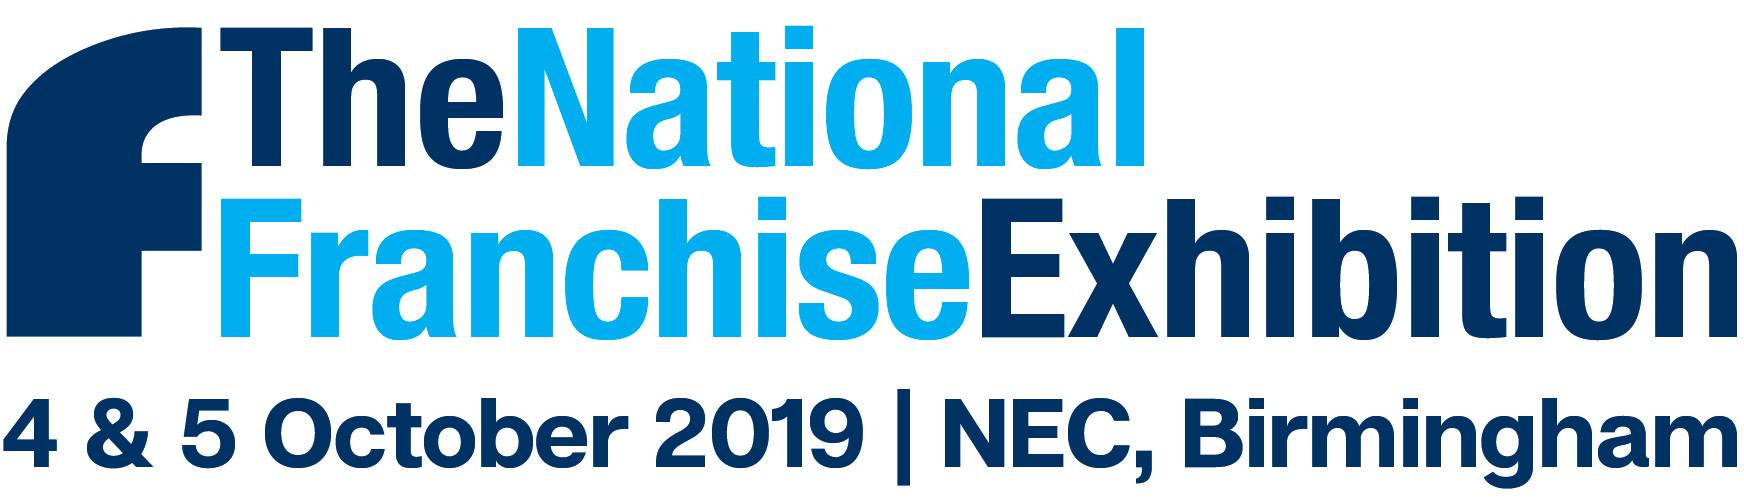 The National Franchise Exhibition 2019